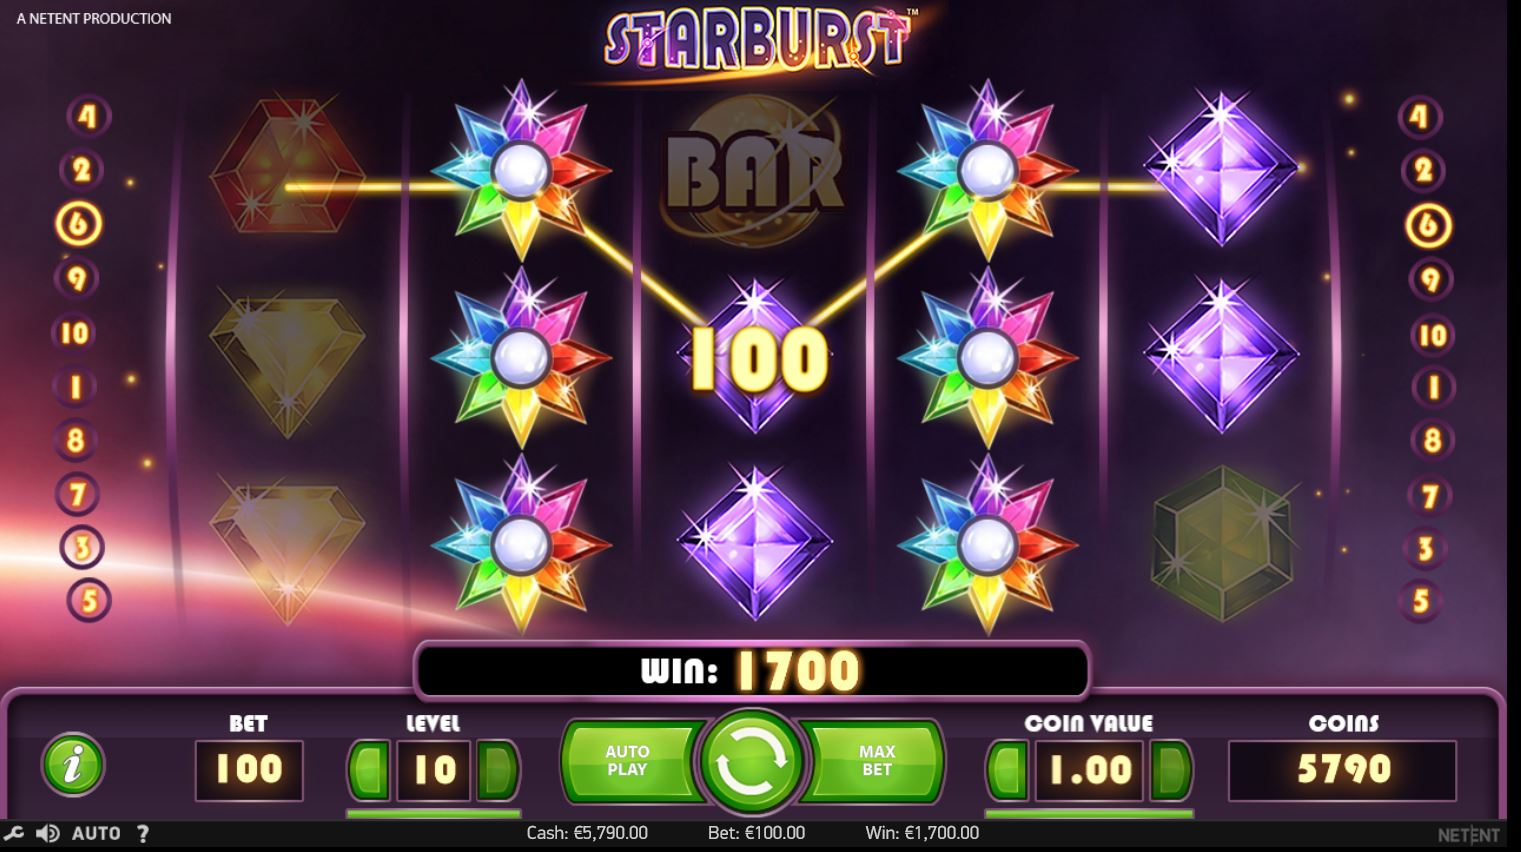 Starburst High roller slot